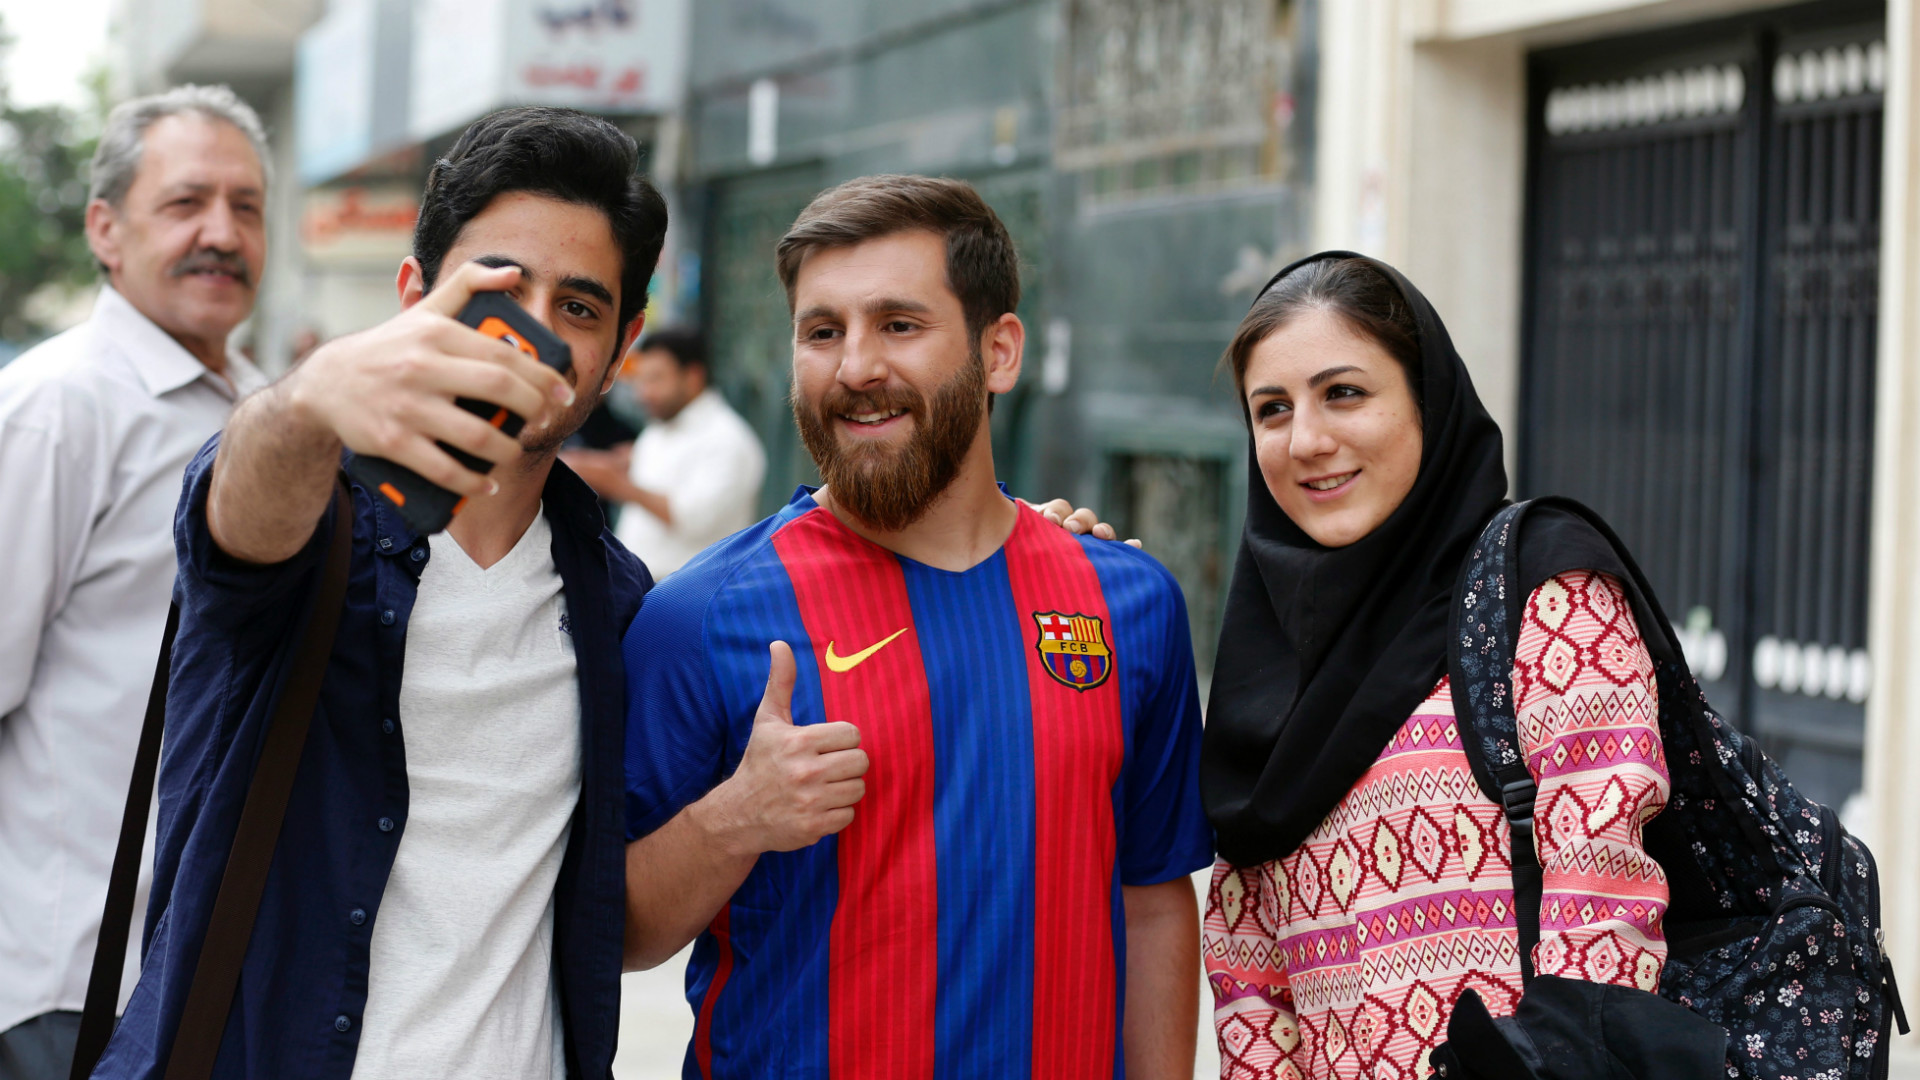 Stunning Lionel Messi lookalike causes stir in Iranian city | Goal.com